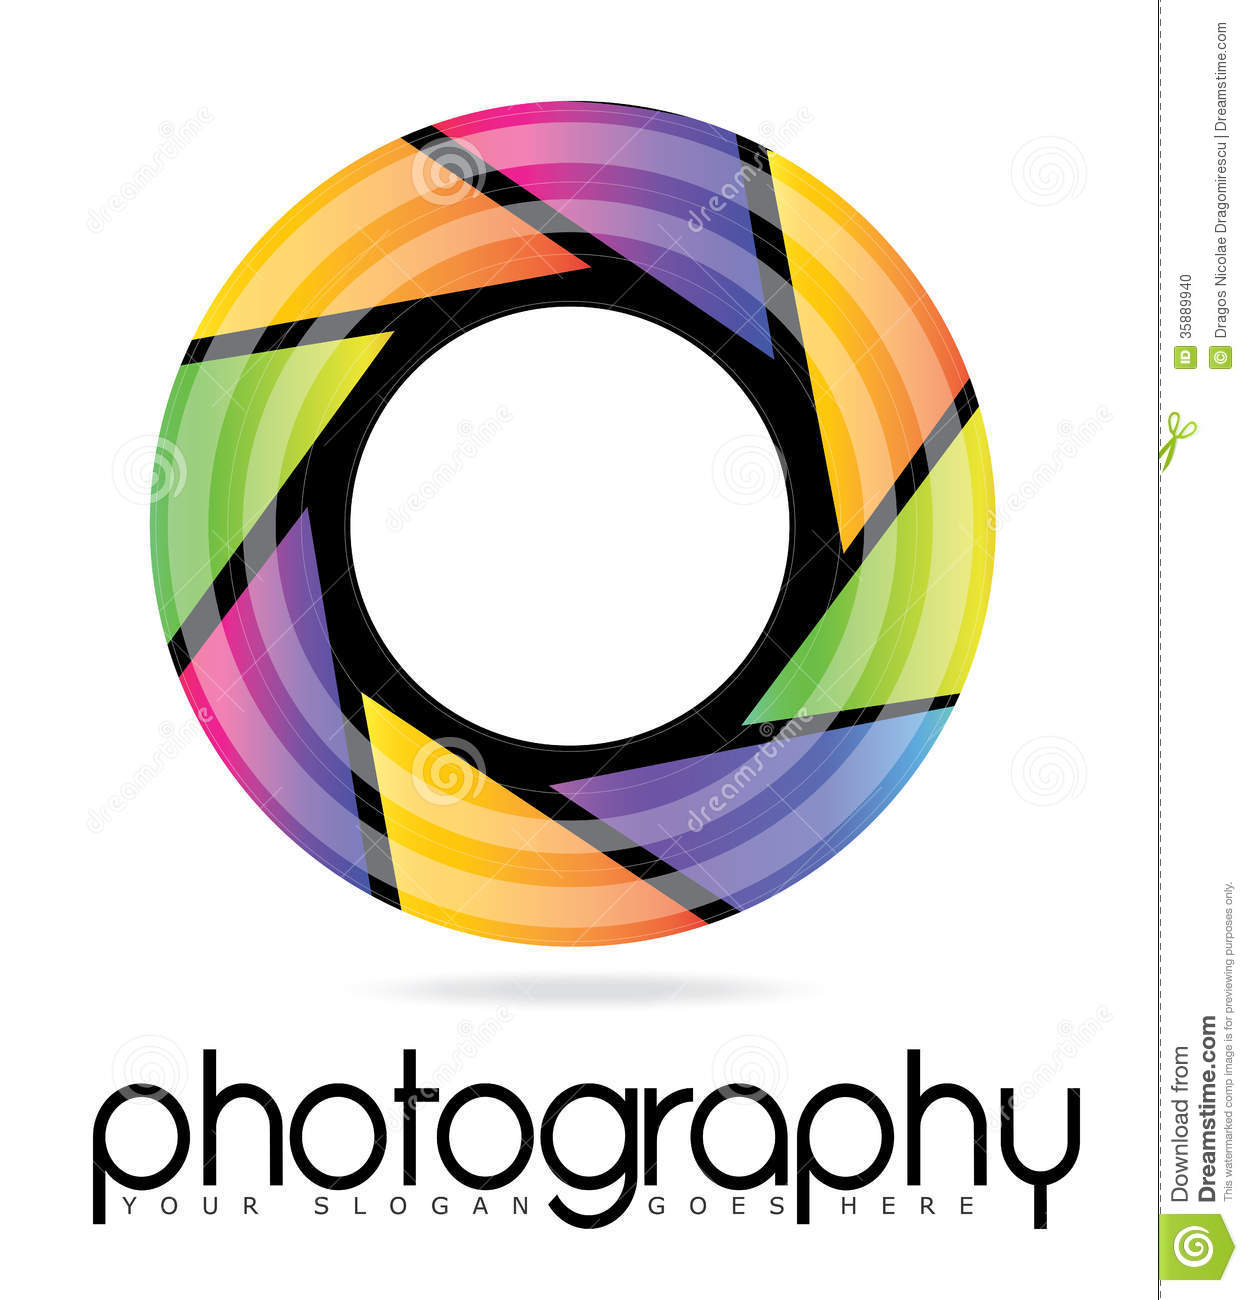 Free Photography Logo Templates. photography logo 19 free psd ai ...